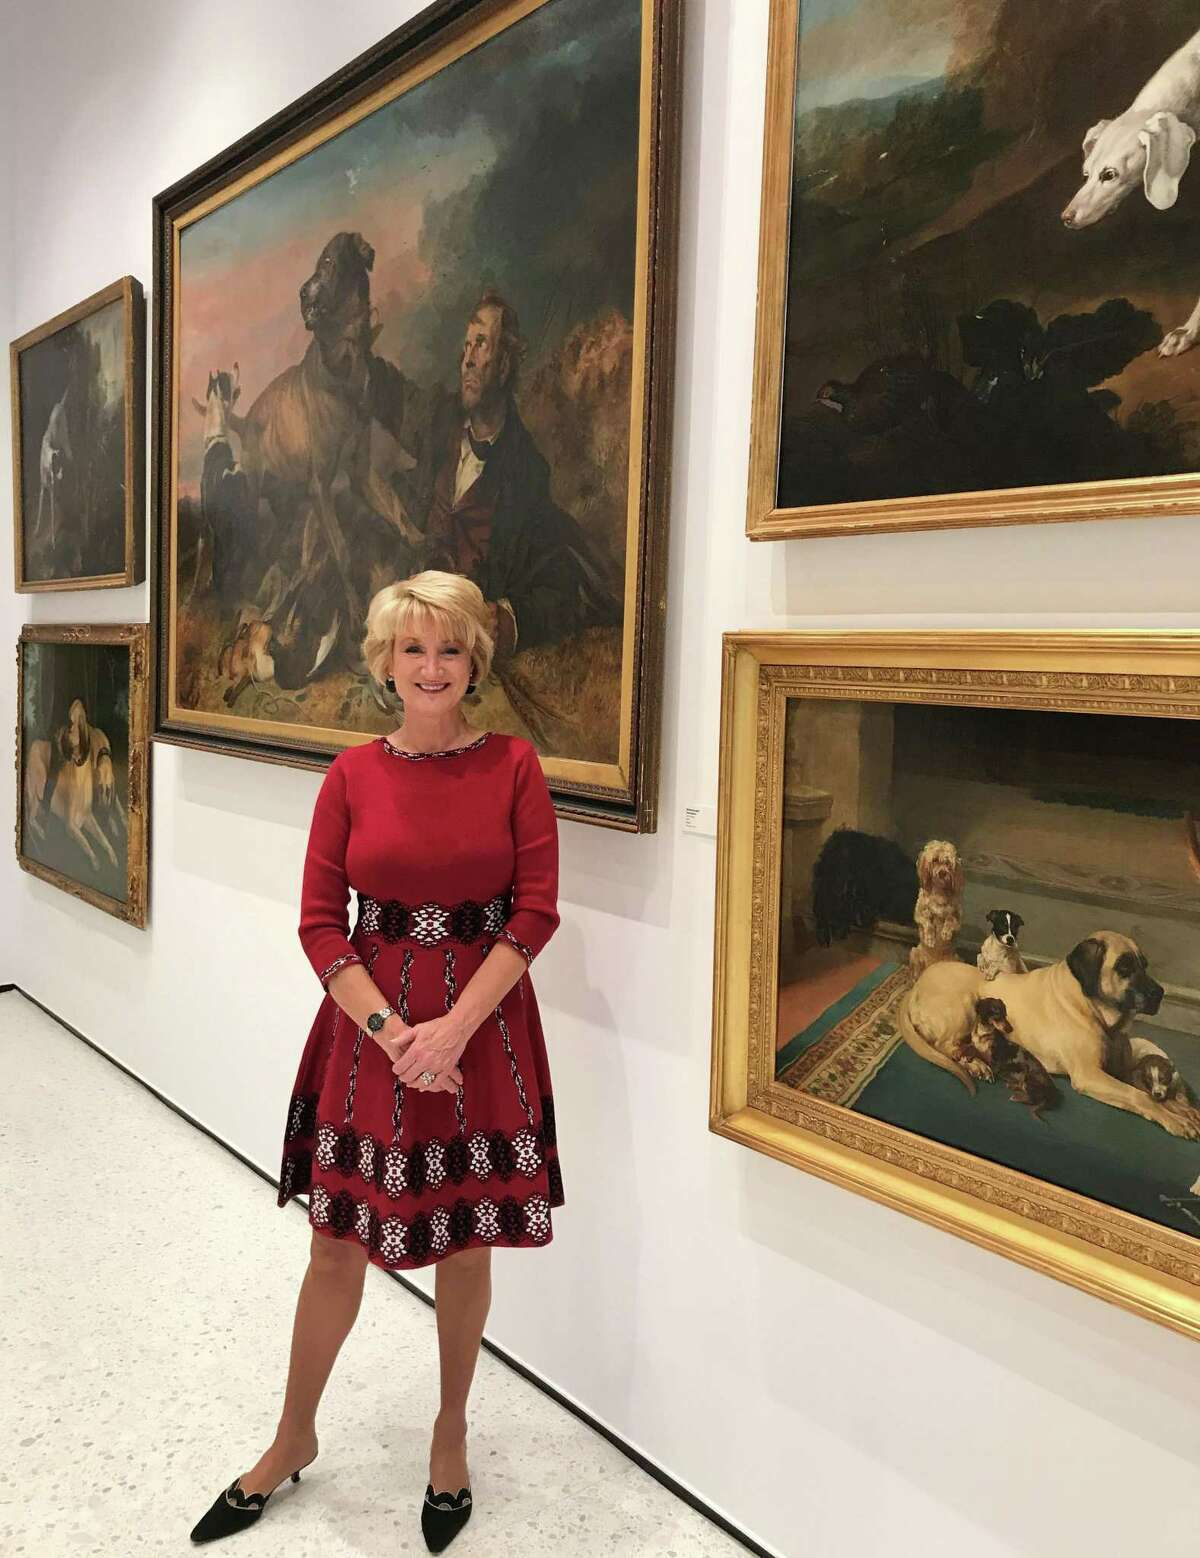 Leslie Mueller, at the American Kennel Club Museum of the Dog in New York City, has found a way to open mueum exhibits to art lovers across the country.